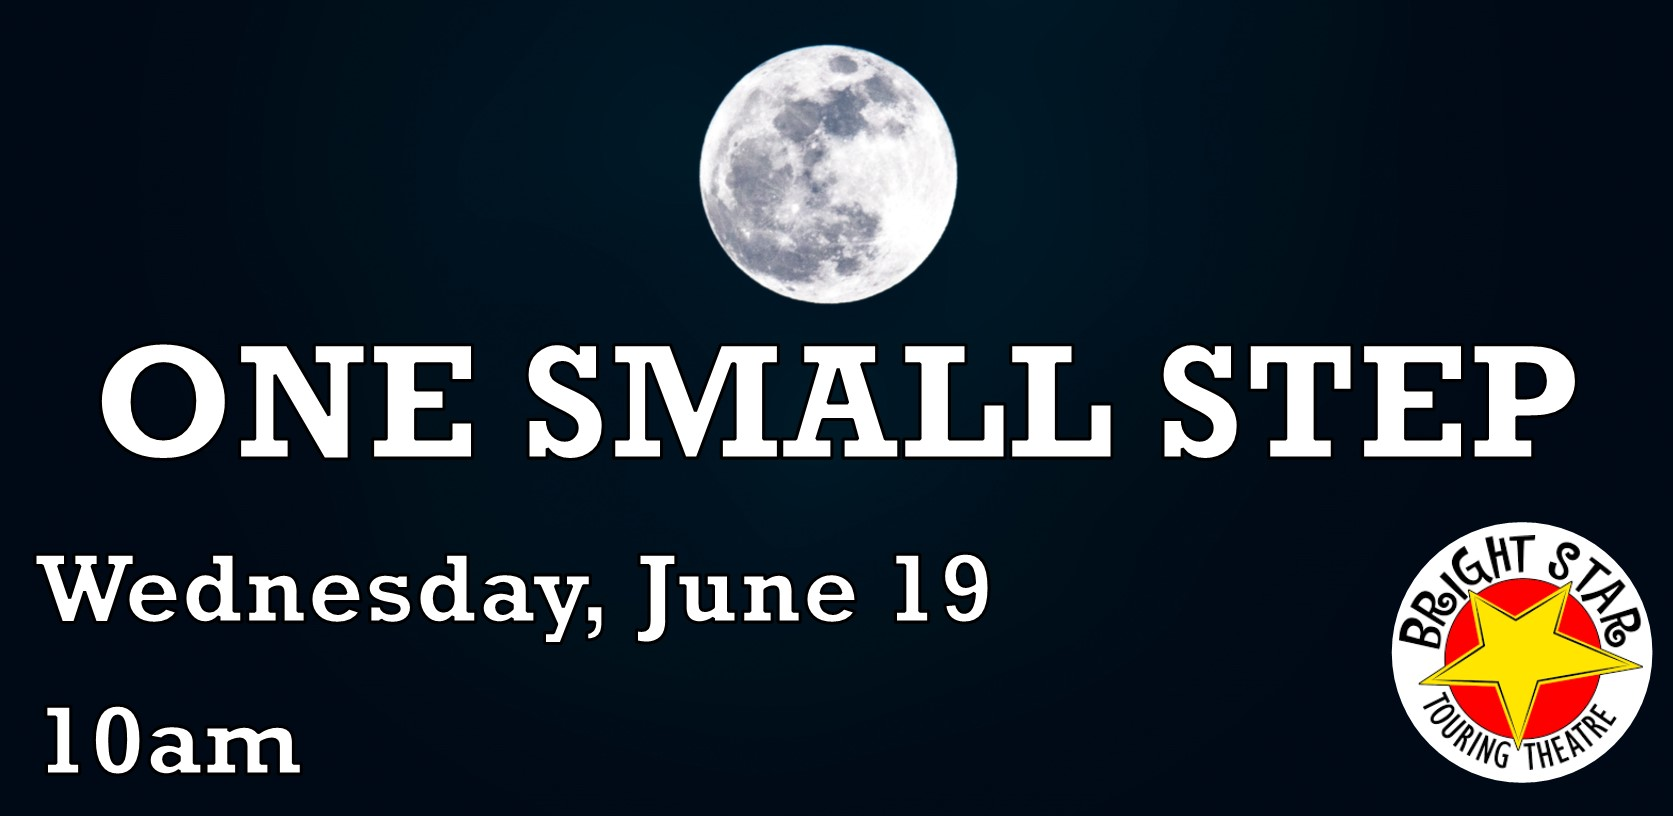 One Small Step presented by Bright Star Theatre